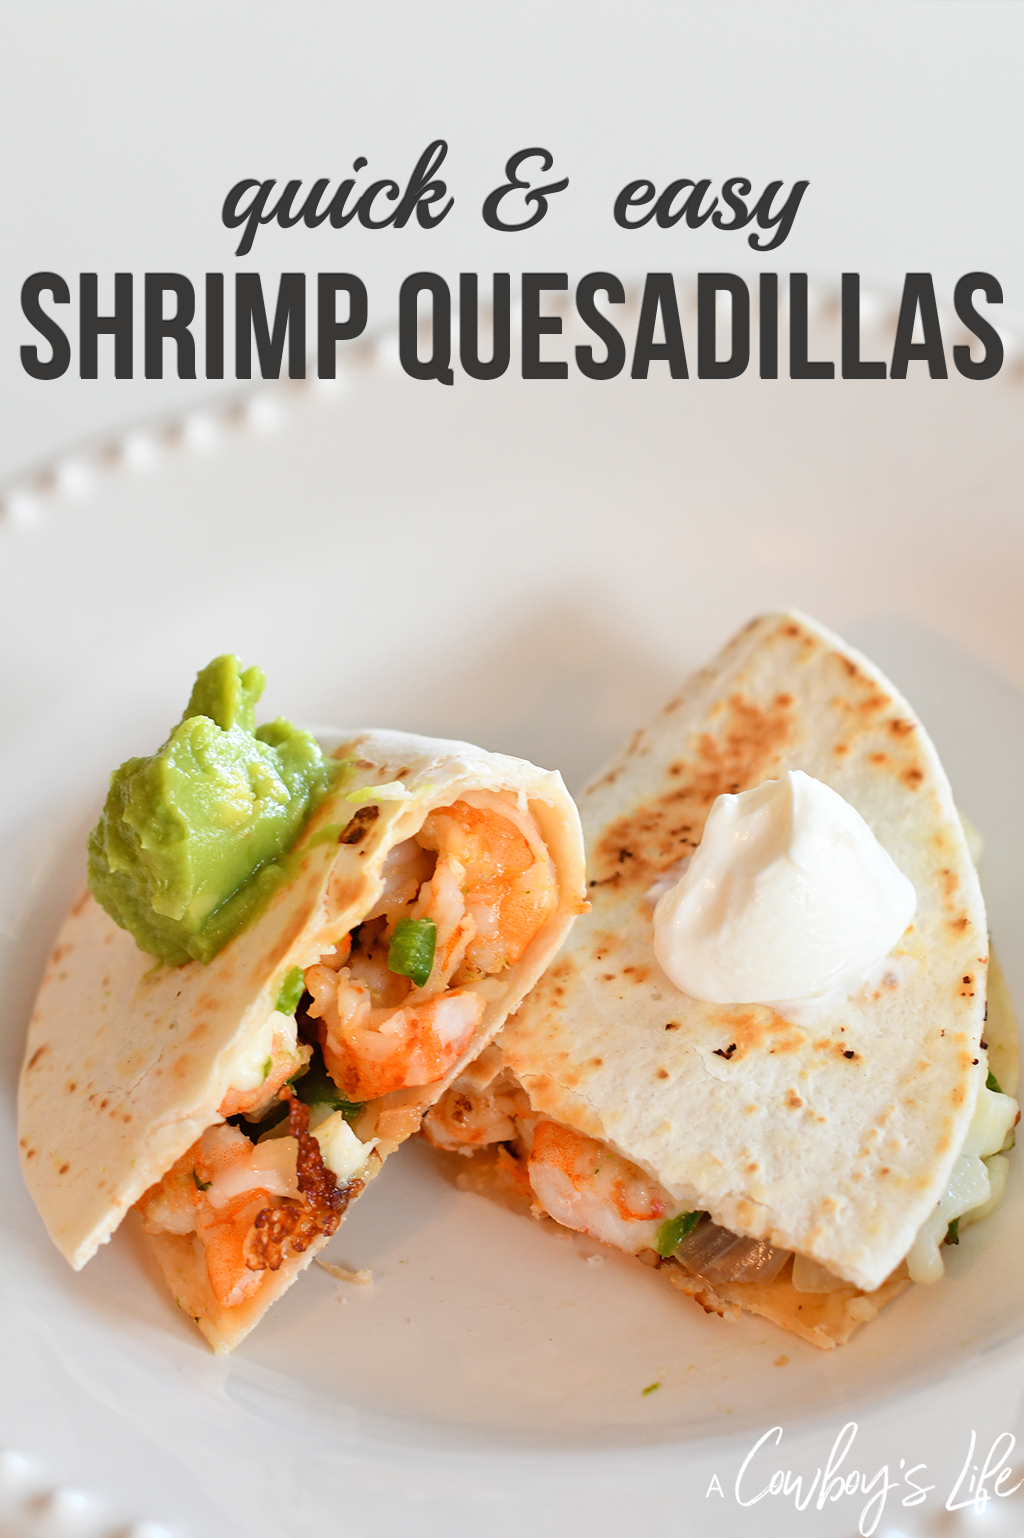 Shrimp Quesadilla Recipe